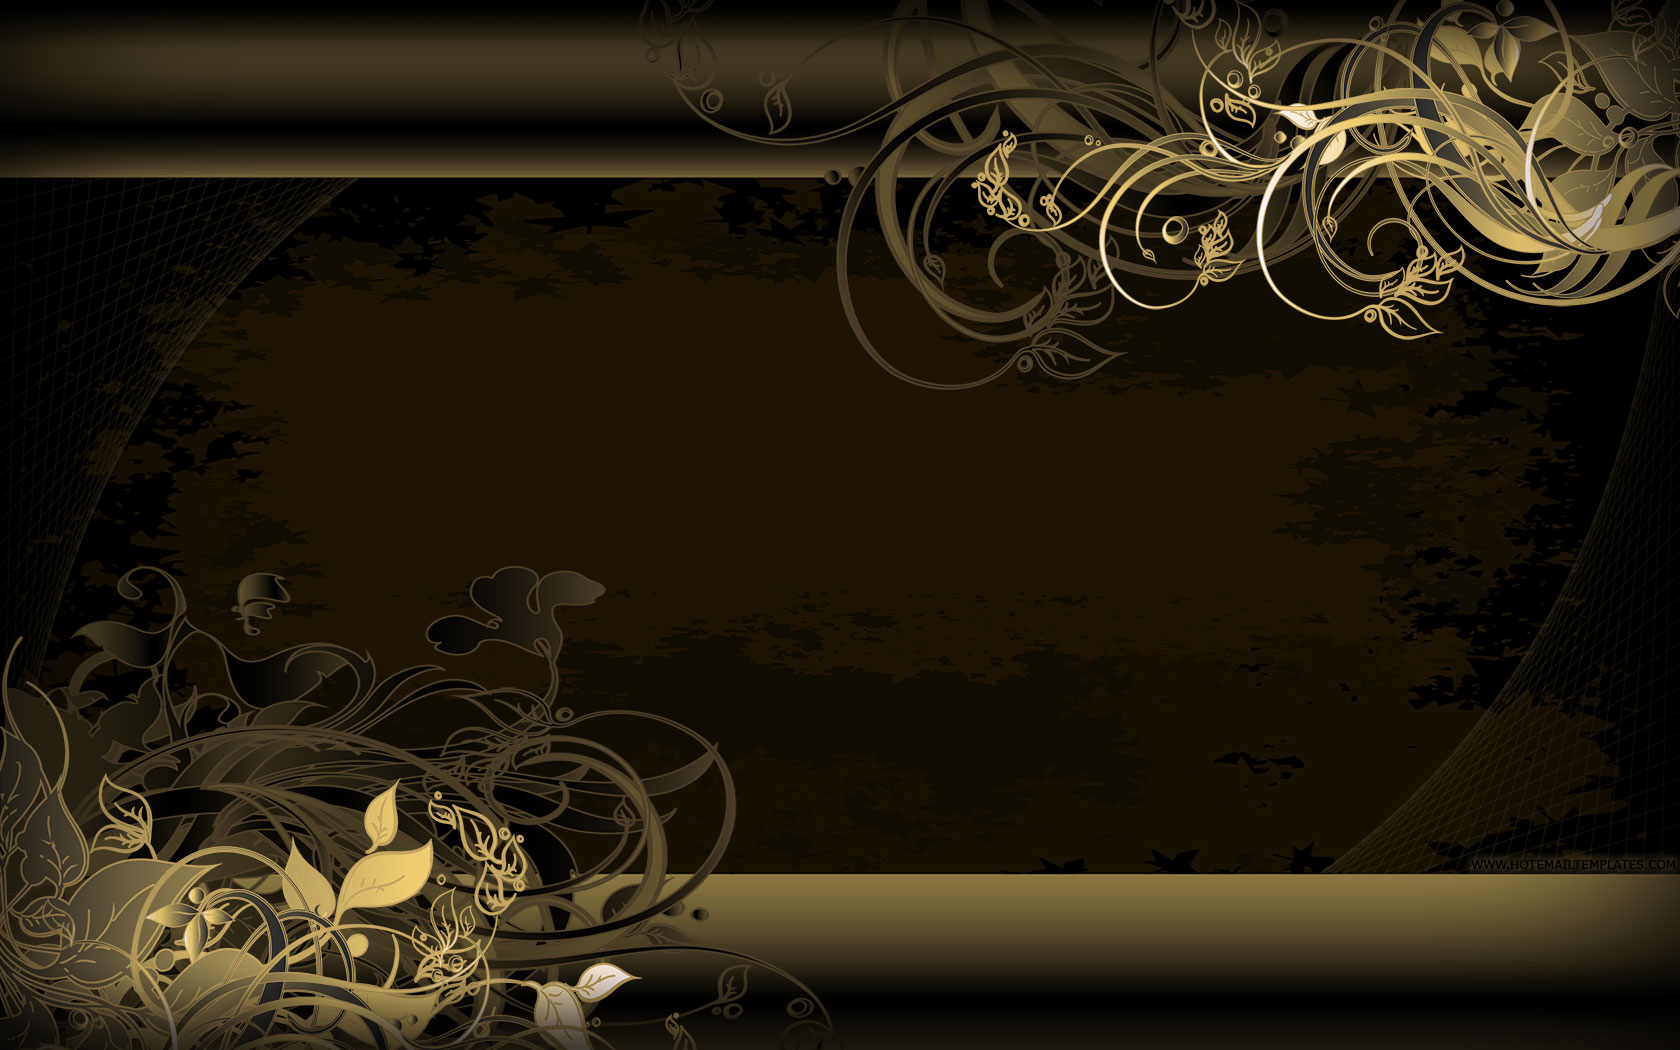 gold vintage wallpaper posted on feb 7th 2014 in wallpapers no 1680x1050